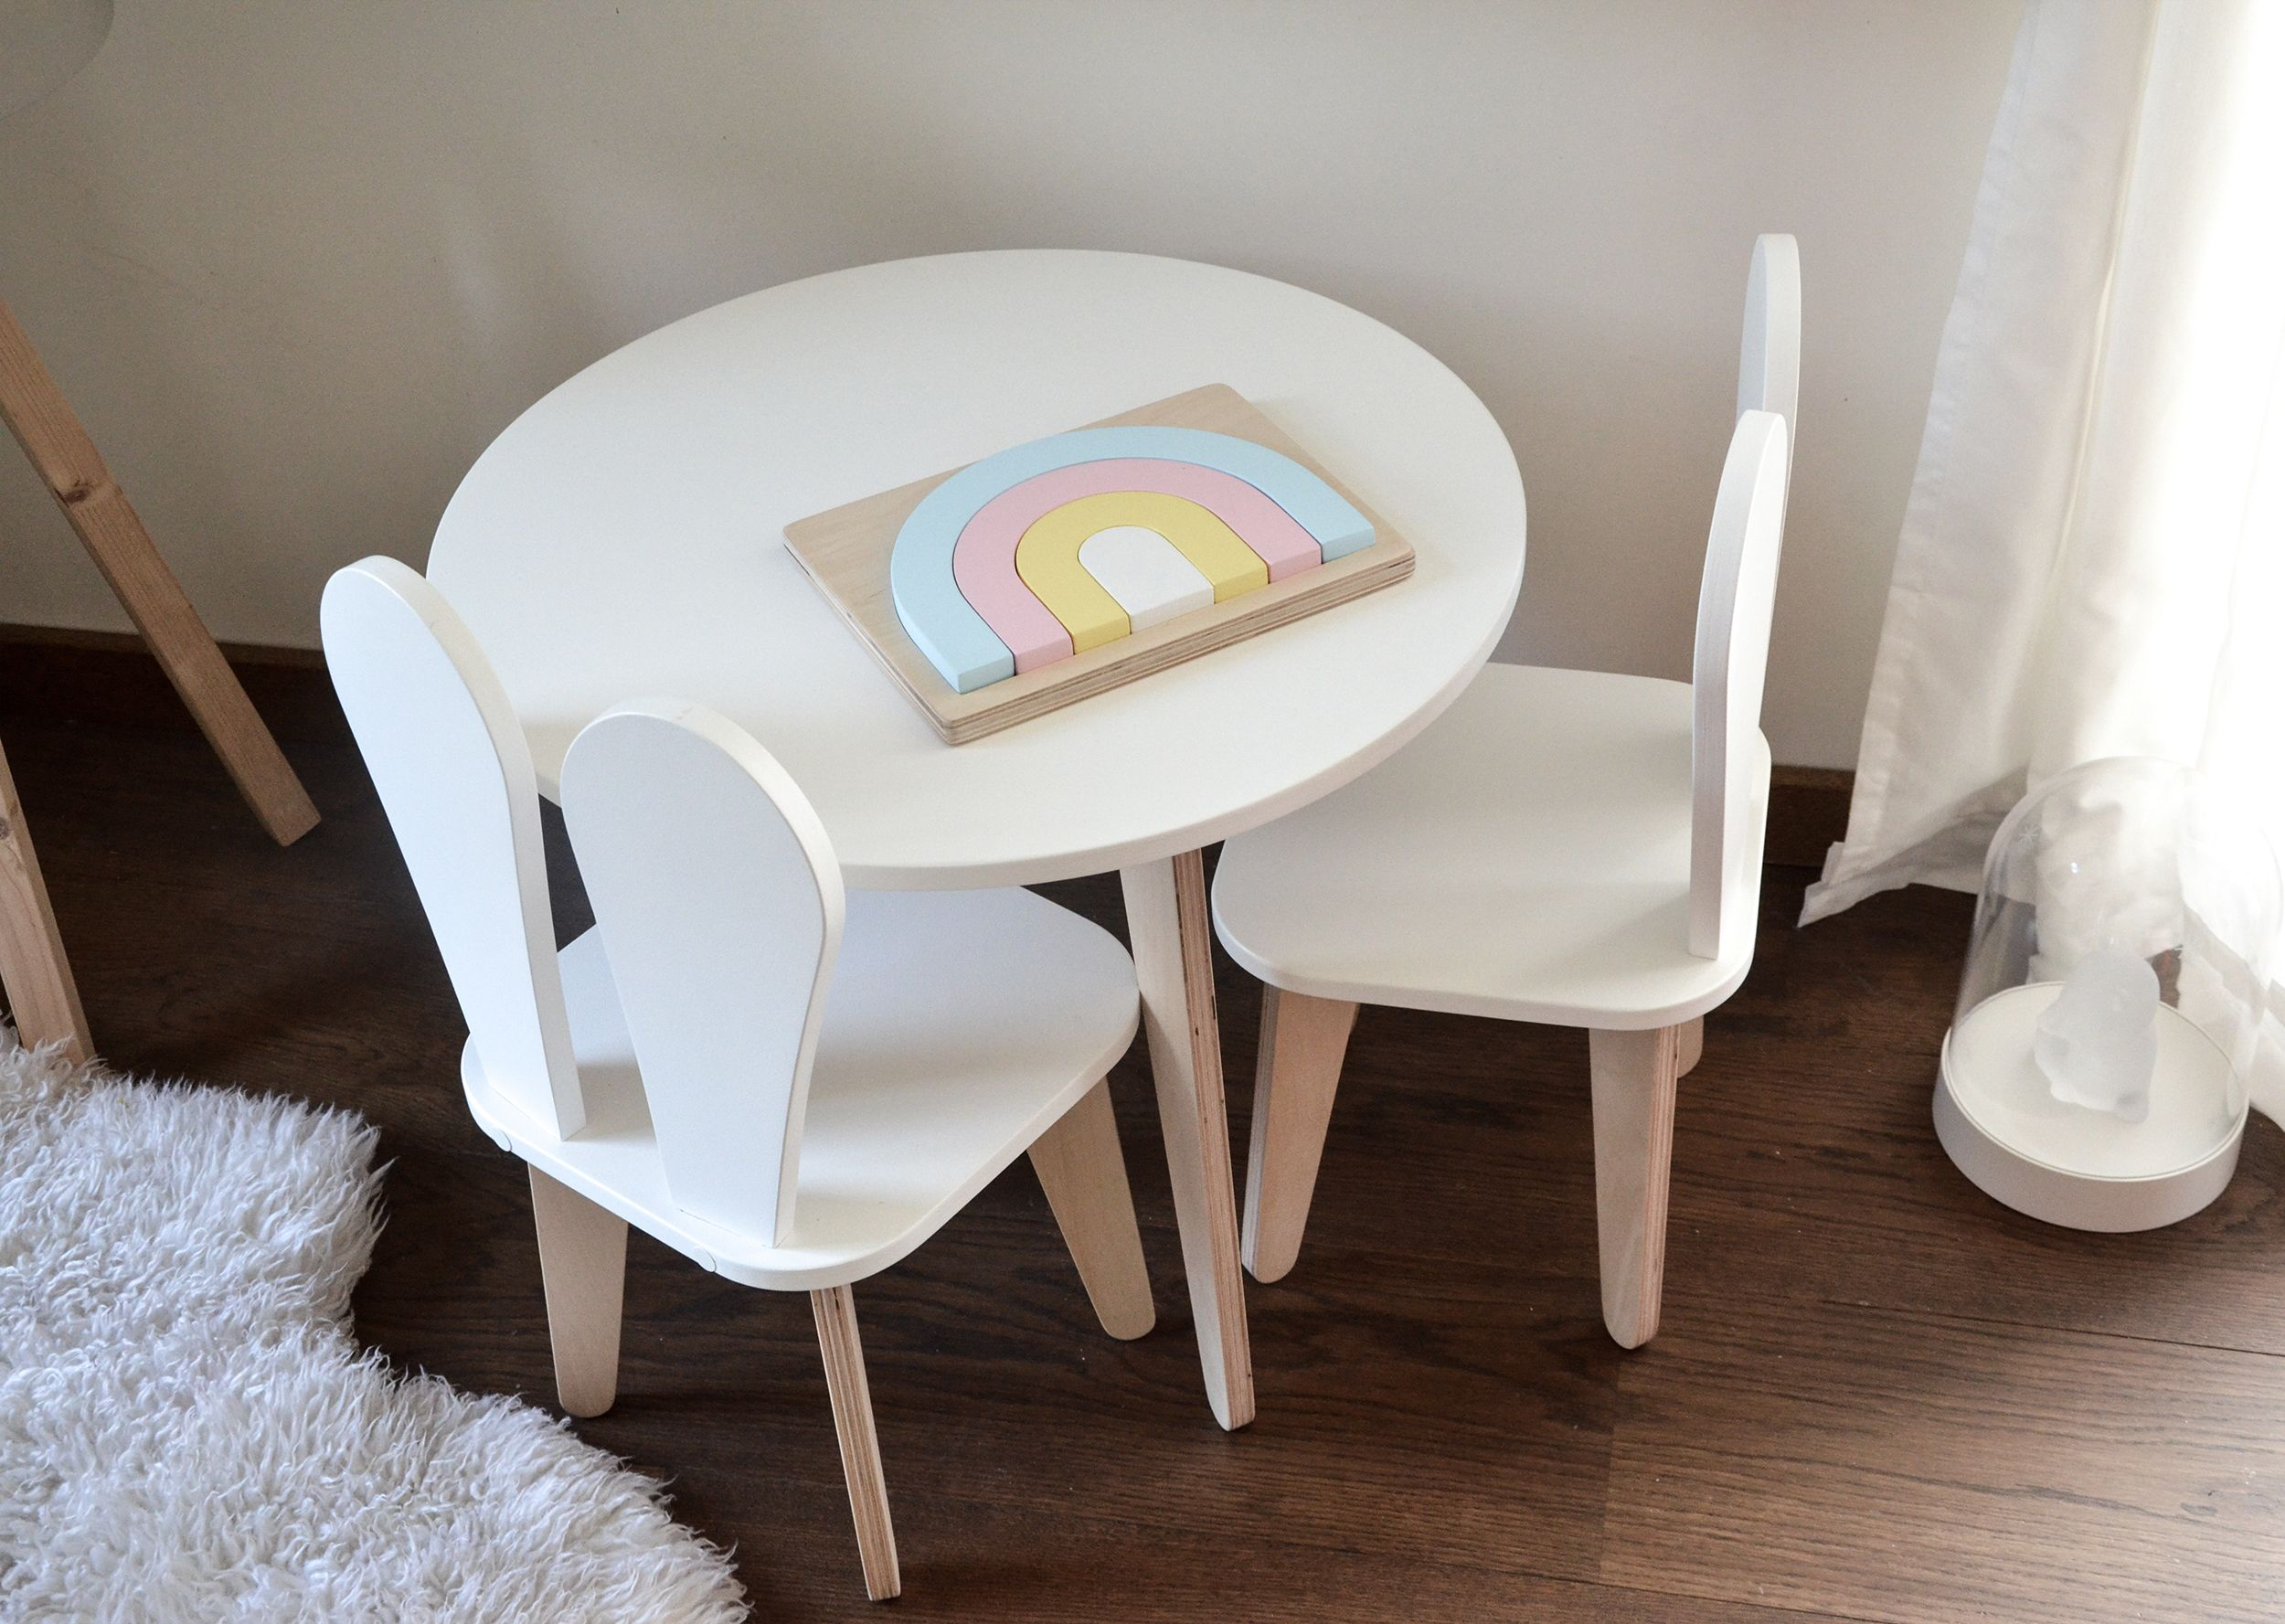 Kids Chair And Table Set Bunny Chair Wooden Chair Plywood Furniture Baby Furniture Toddler Furniture Furniture